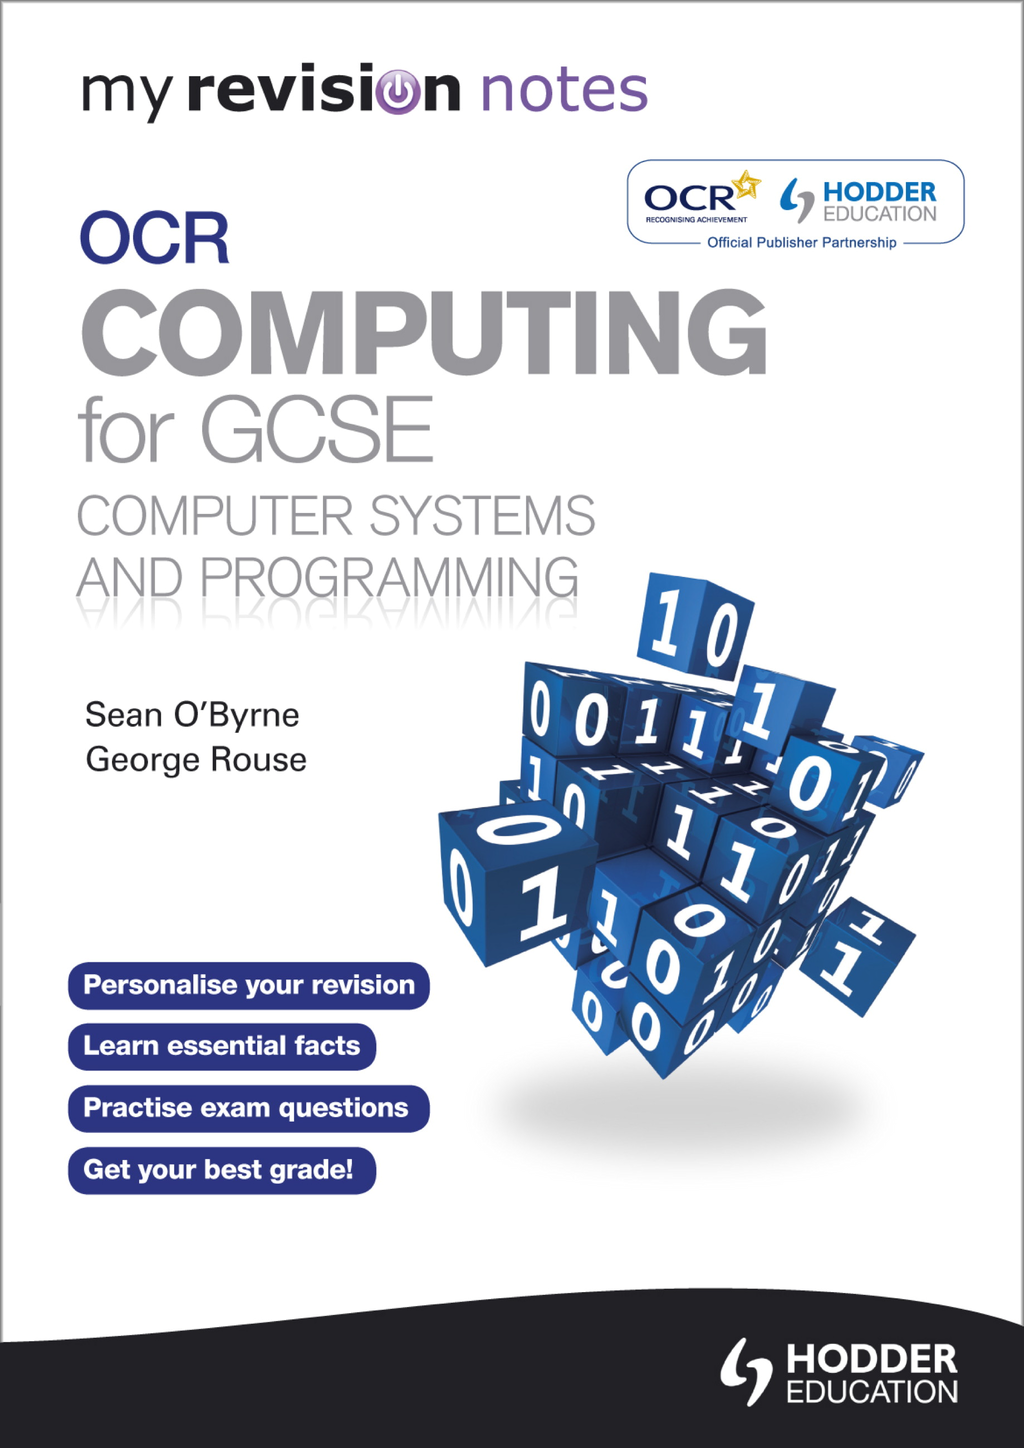 My Revision Notes OCR Computing for GCSE eBook ePub                   Computer Systems and Programming